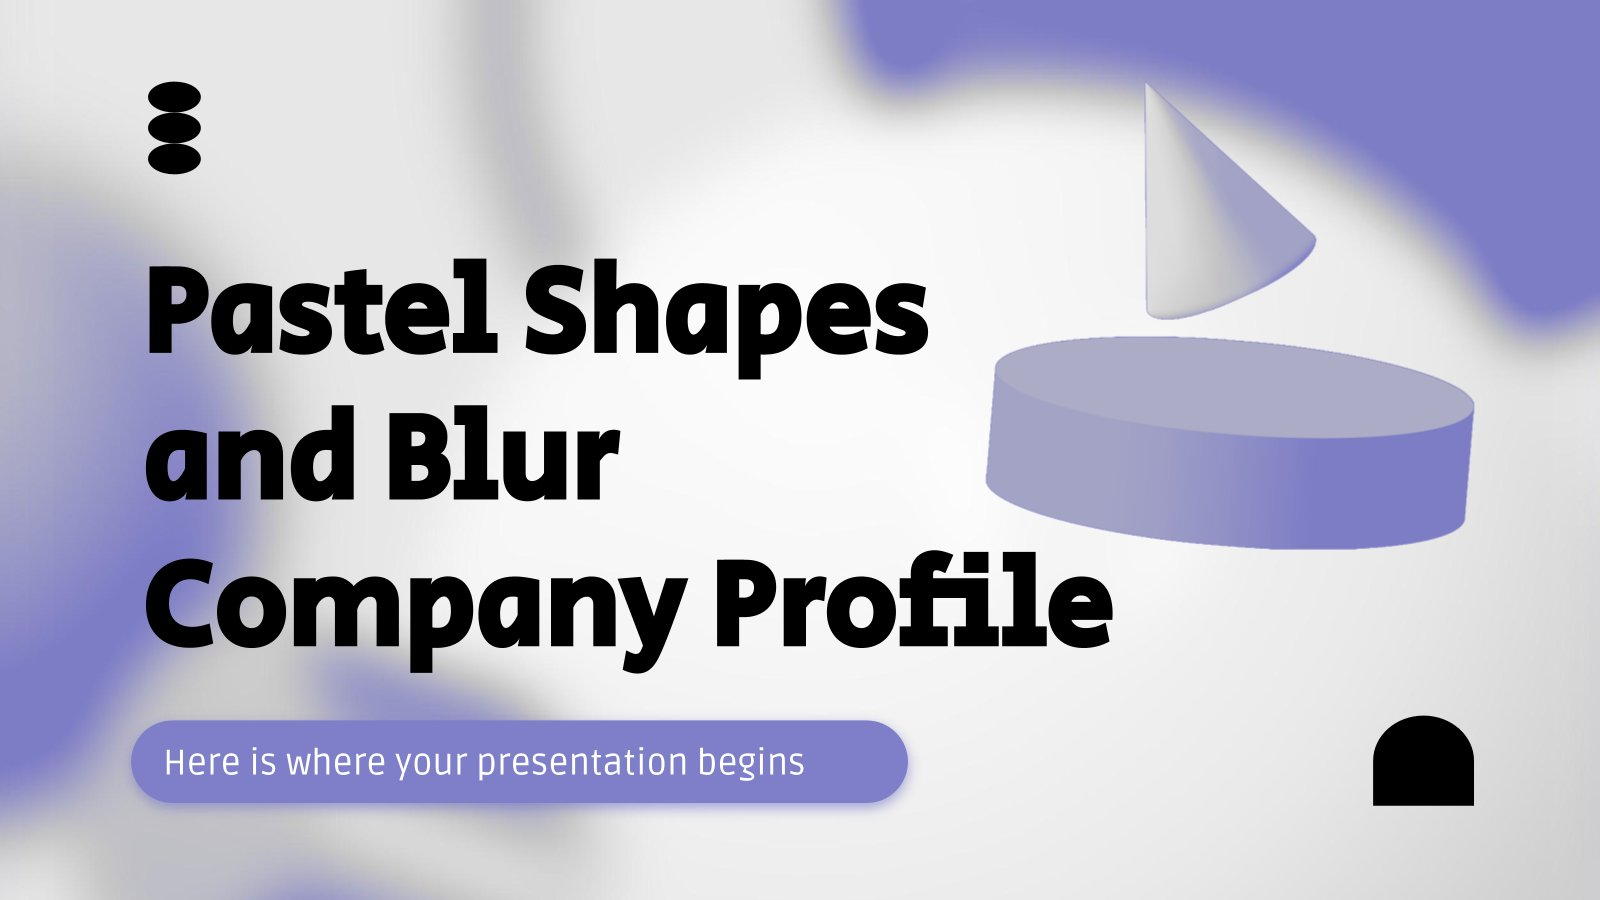 Pastel Shapes and Blur Company Profile presentation template